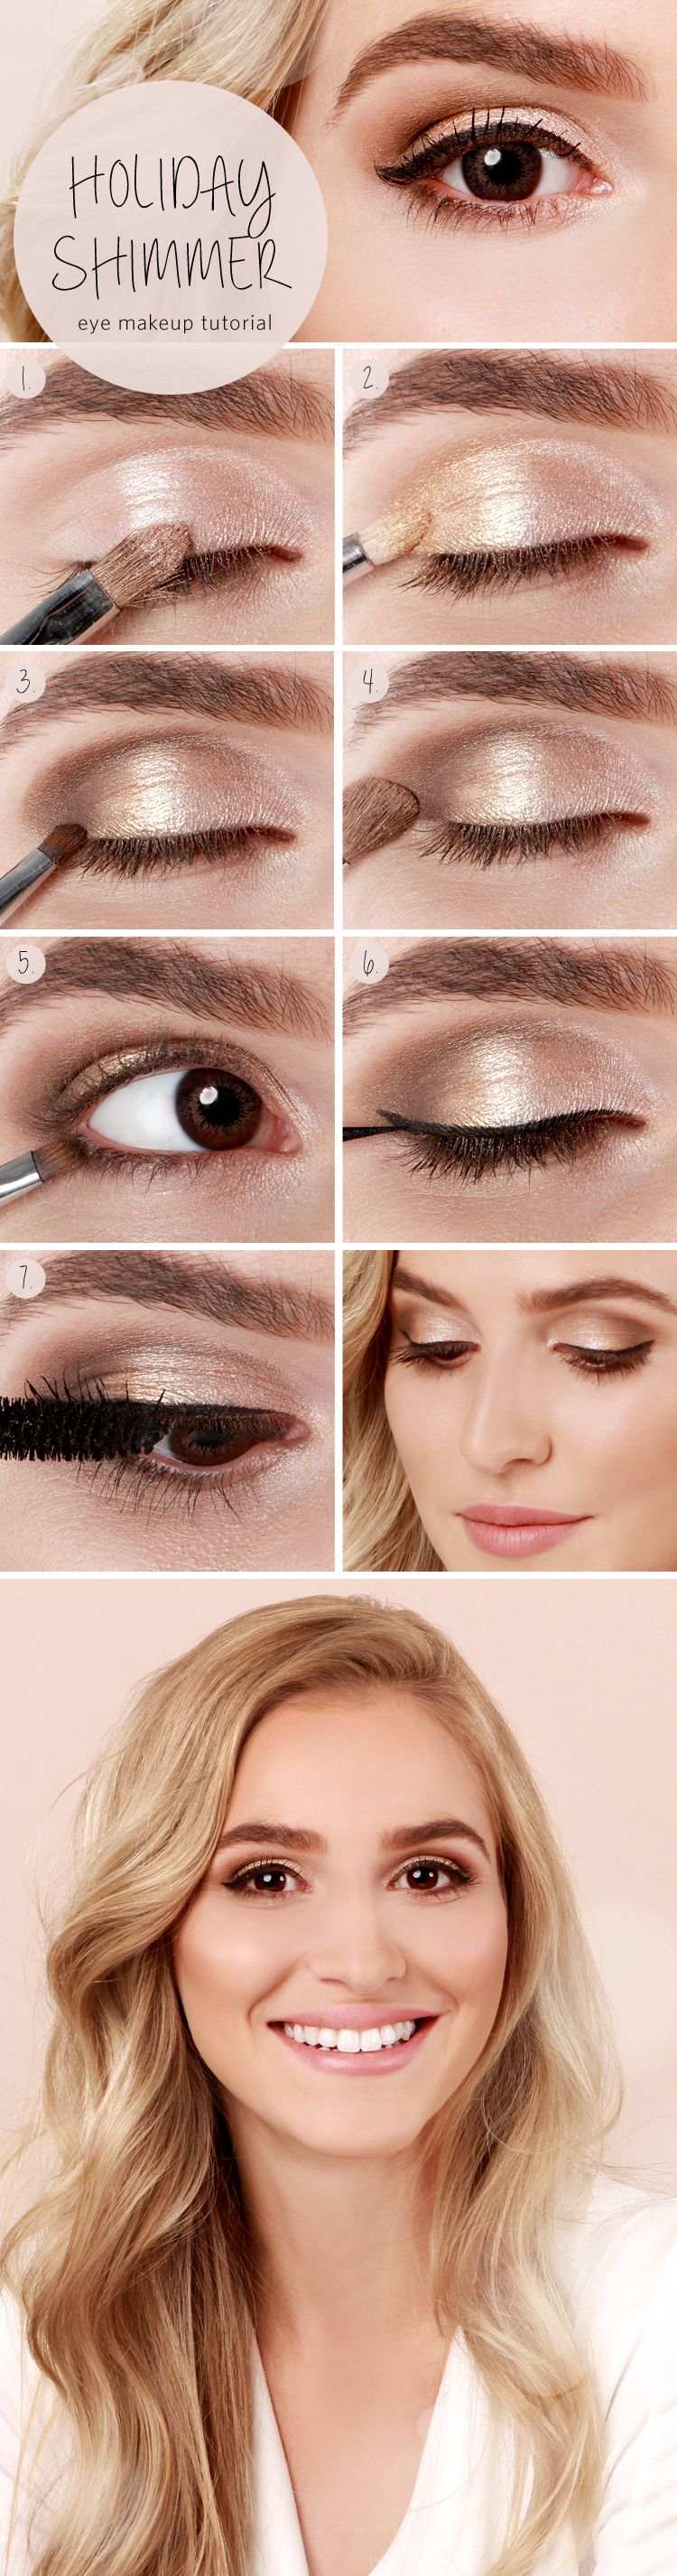 Lulus how to holiday shimmer eye tutorial lulus fashion blog lulus how to holiday shimmer eye tutorial at lulus baditri Images